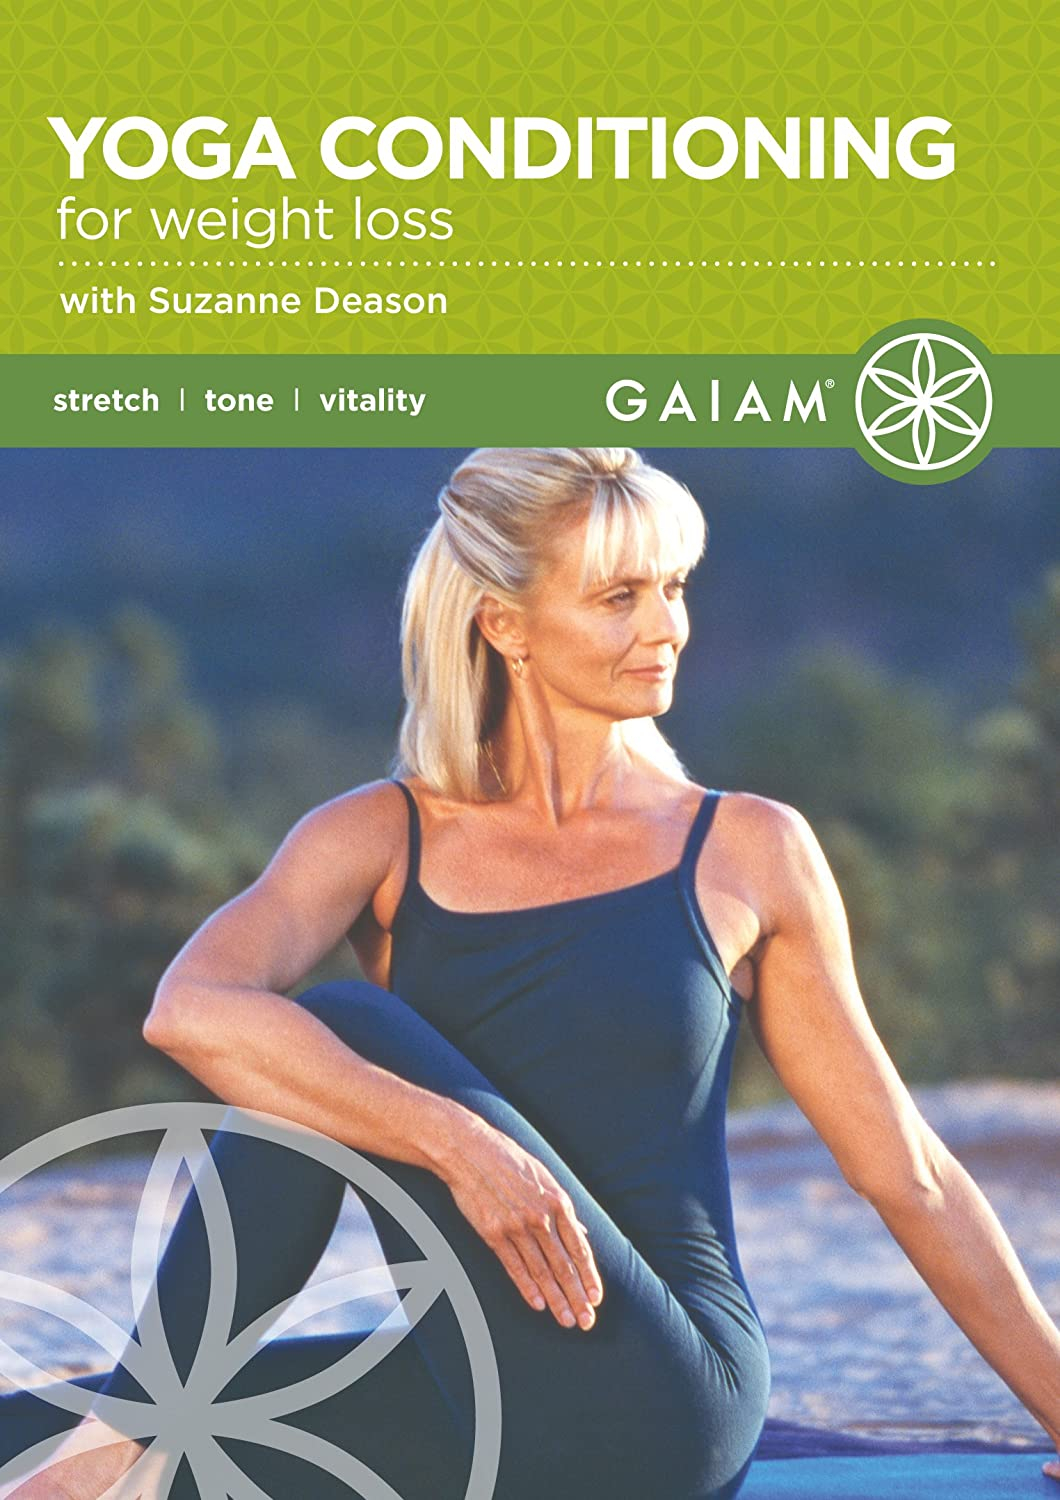 Yoga Conditioning for Weight Loss Gaiam: Yoga/Suzanne Deason 93-0173 Fitness/Self-Help Movie